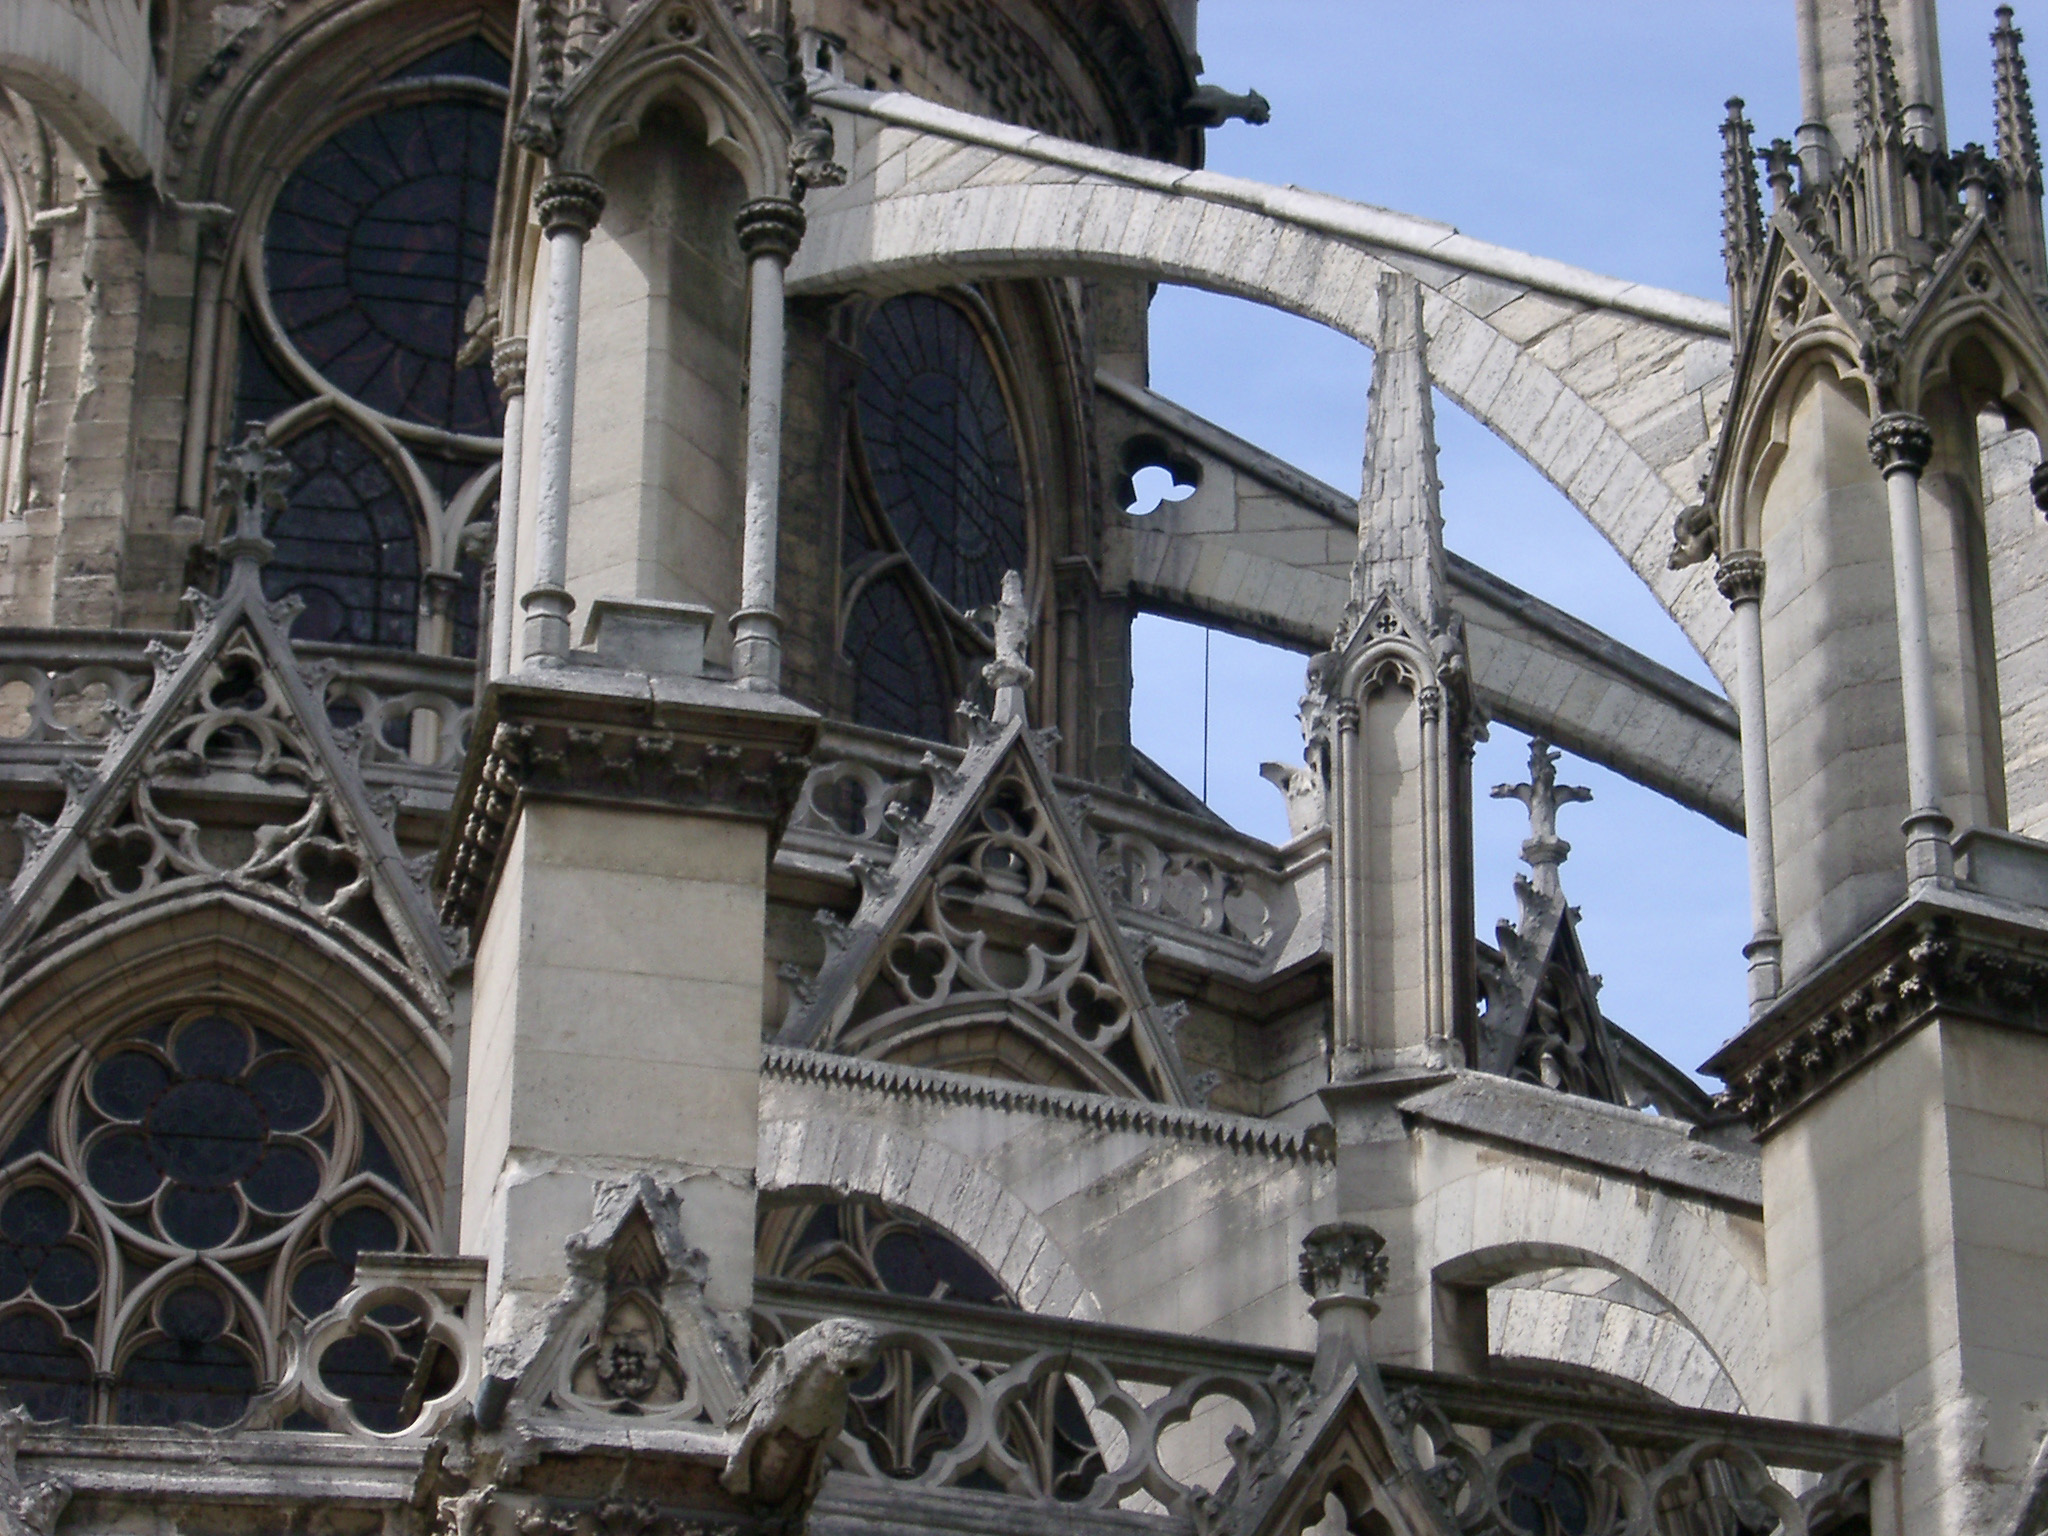 Notre Dame Cathedral architectural detail showing the flying buttress, gargoyles and stone spires, Paris